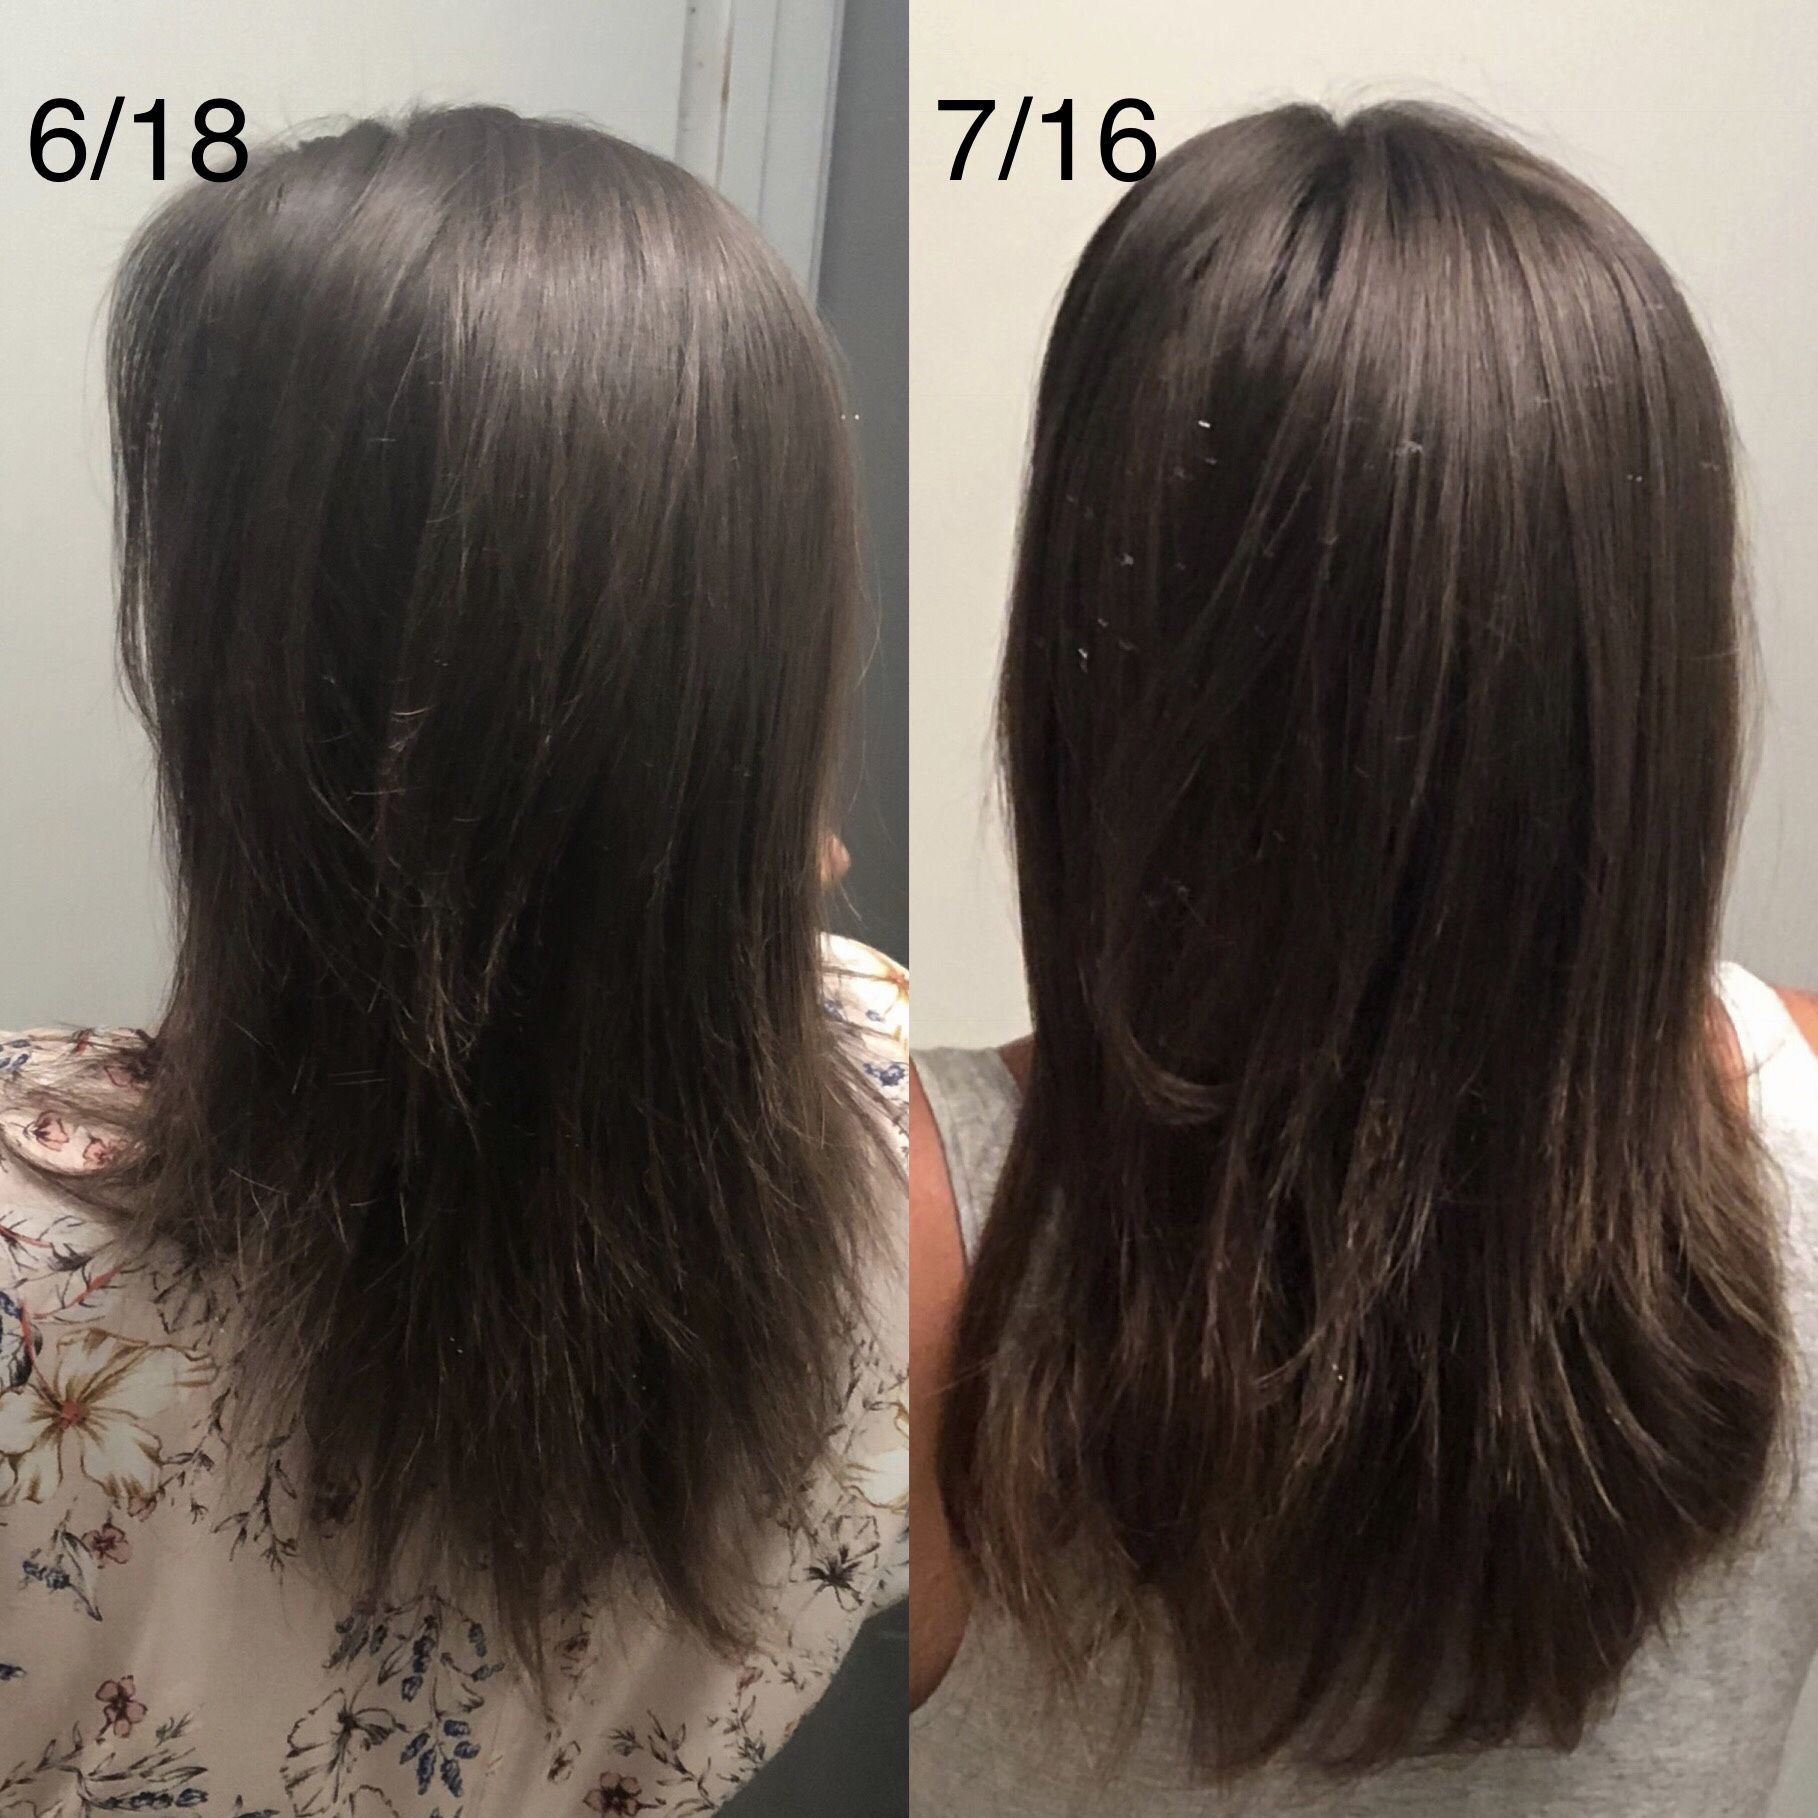 One Month Results Using Castor Oil Hair Styles Long Hair Styles Hair